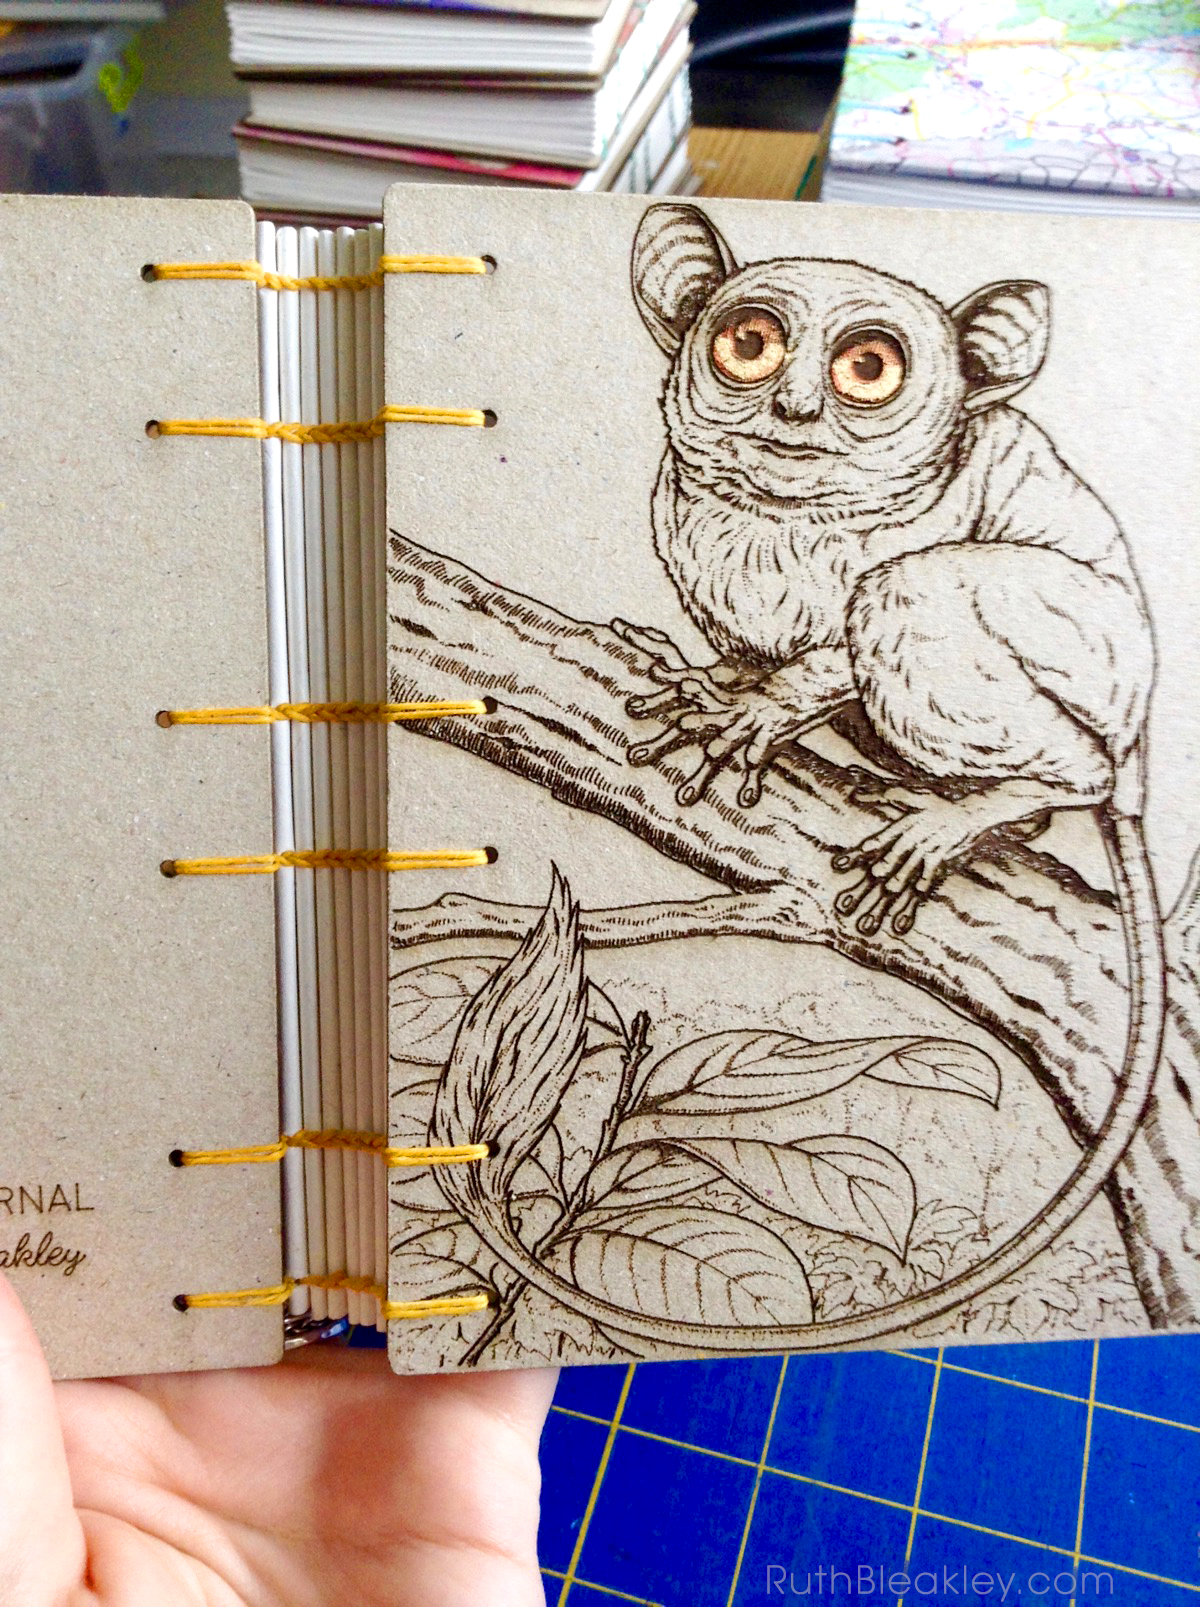 Koboldmaki Tarsier laser engraved journal handmade by book artist Ruth Bleakley - hello there